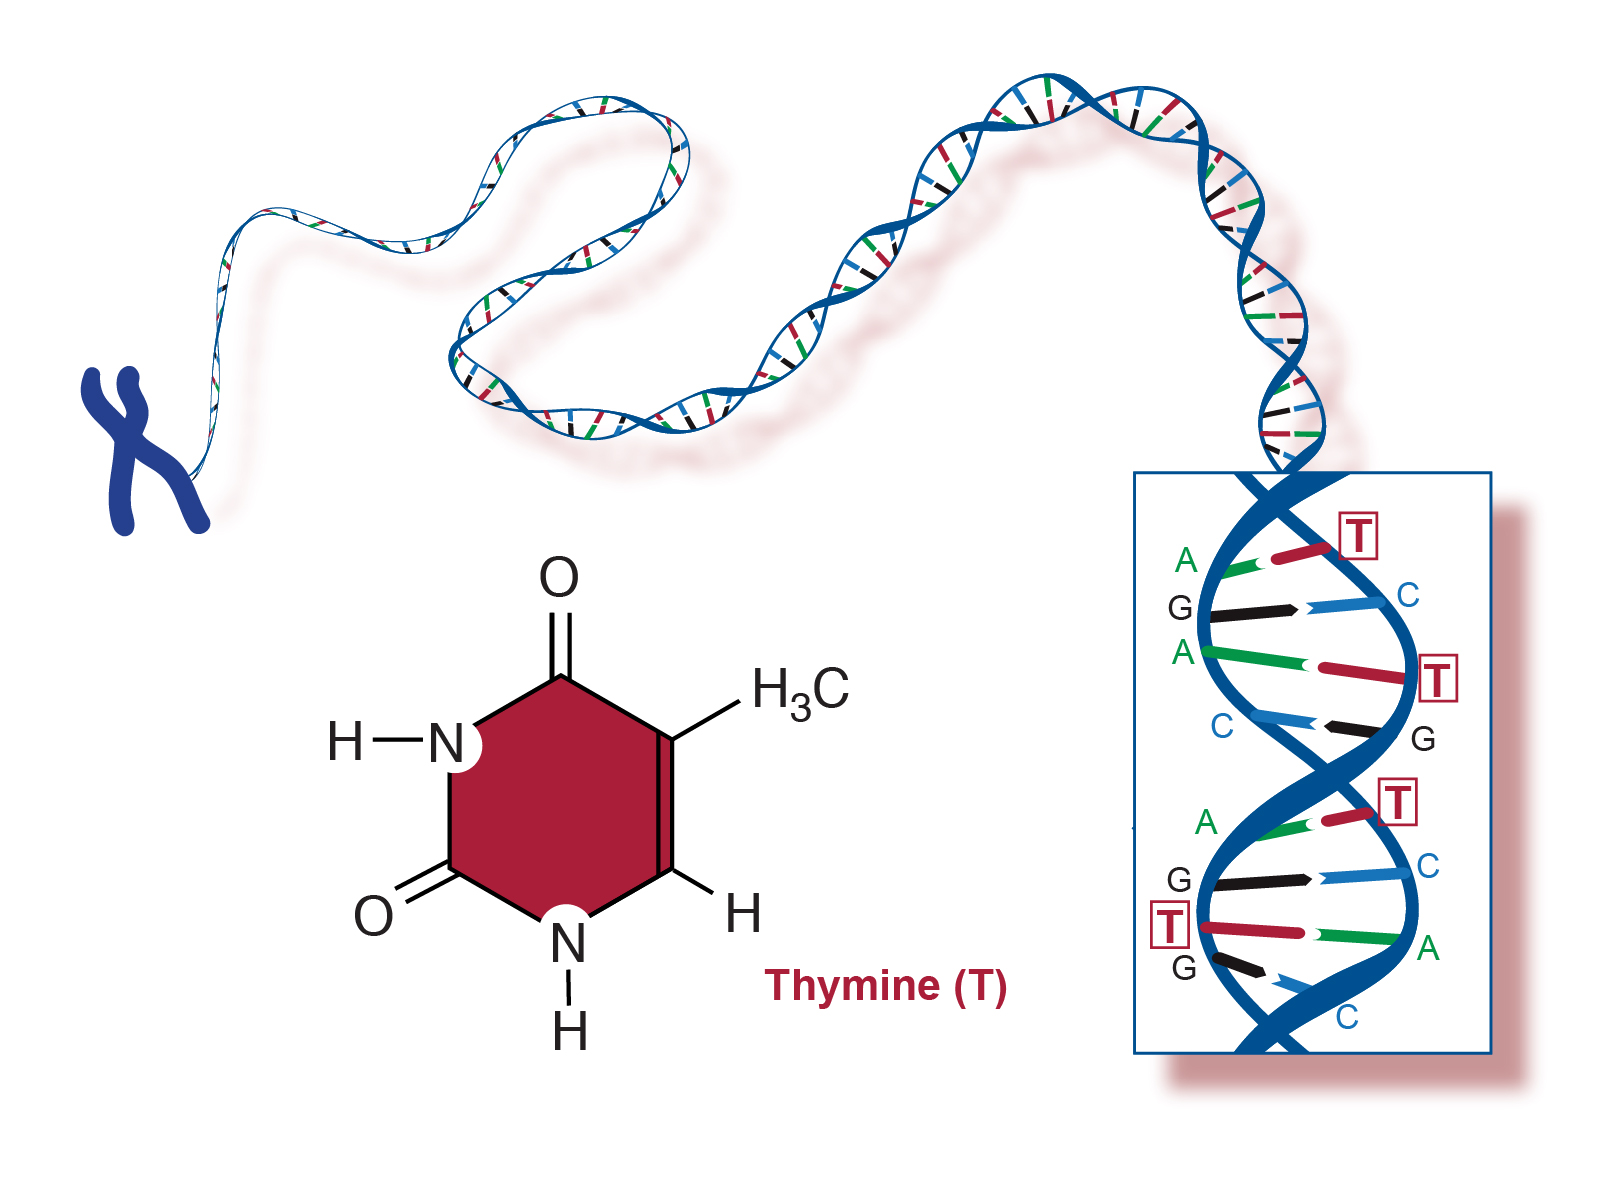 hight resolution of within the dna molecule thymine bases located on one strand form chemical bonds with adenine bases on the opposite strand the sequence of four dna bases